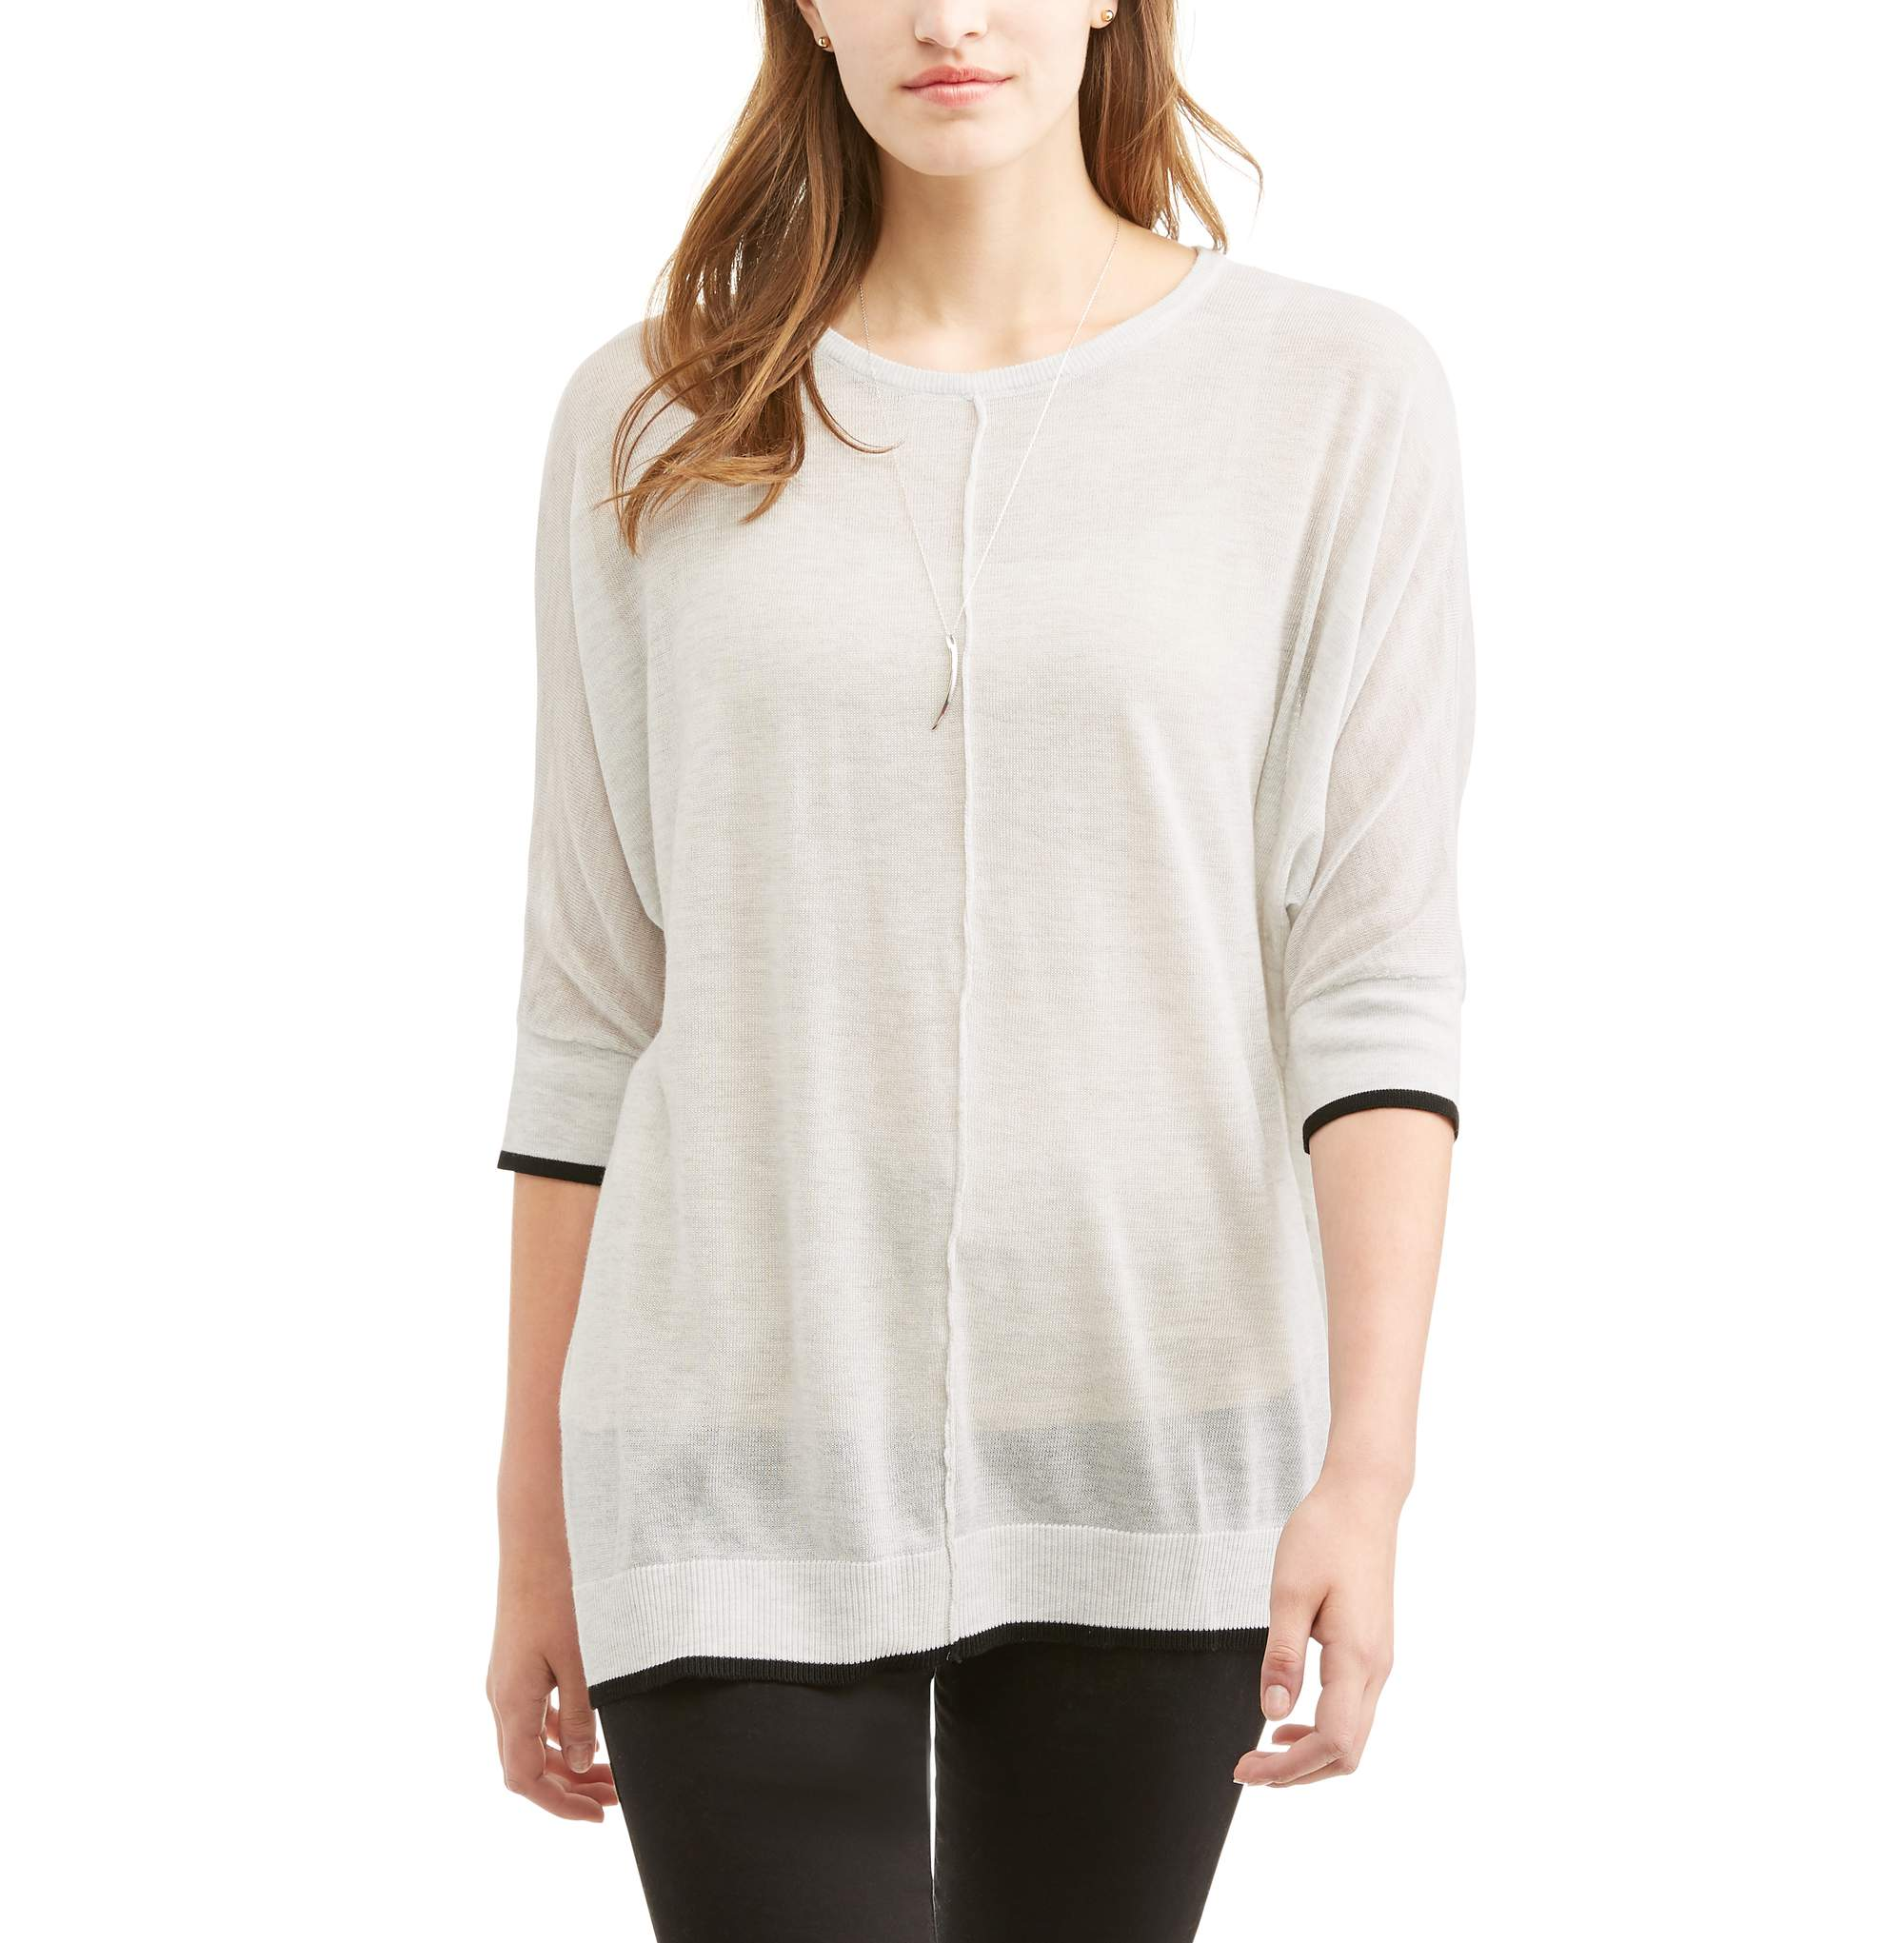 Thyme & Honey Women's Lightweight Tunic Sweater - Walmart.com